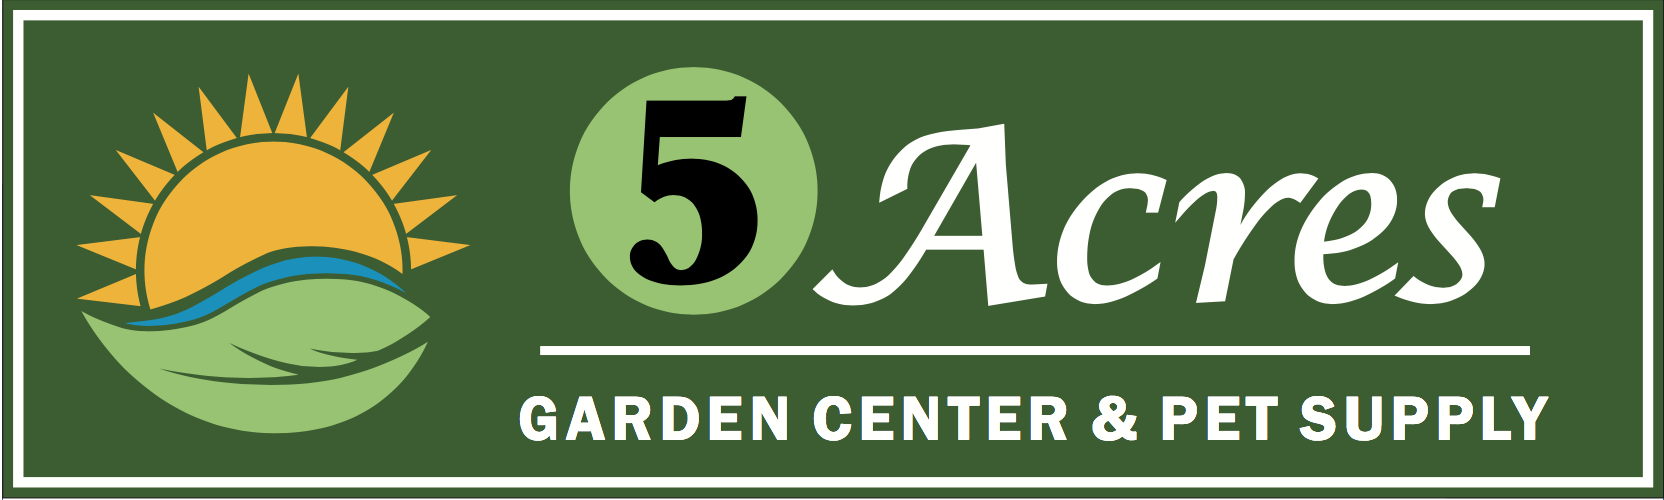 5 Acres Garden Center and Pet Supply